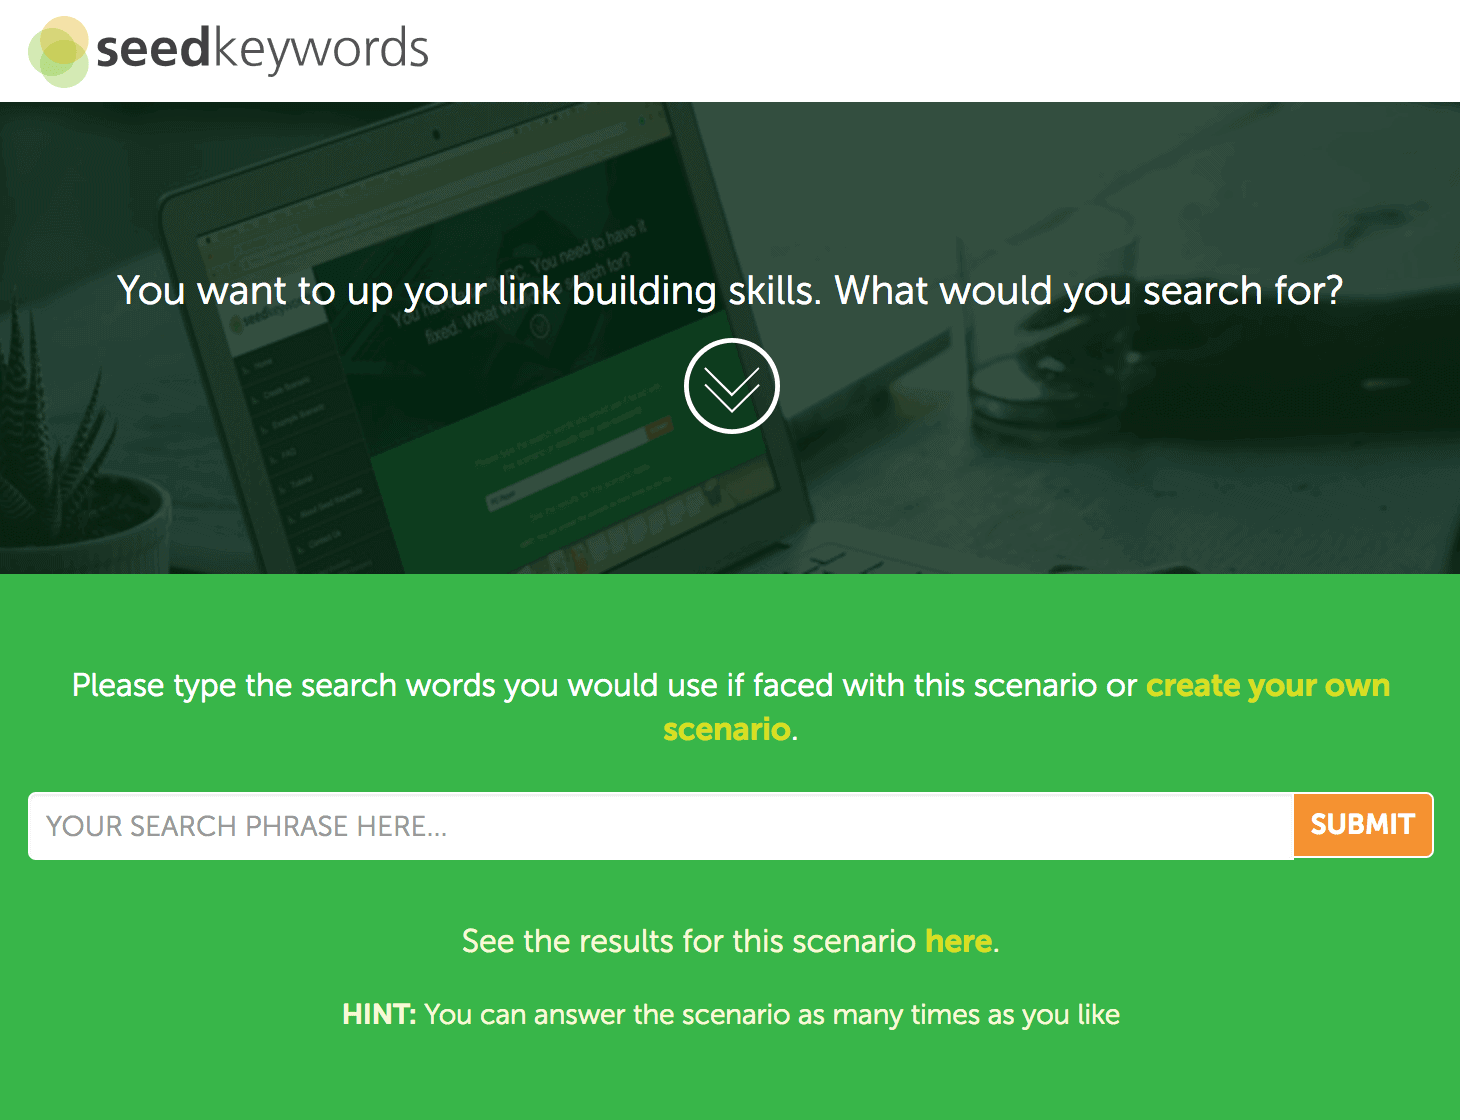 Seedkeywords link clicked